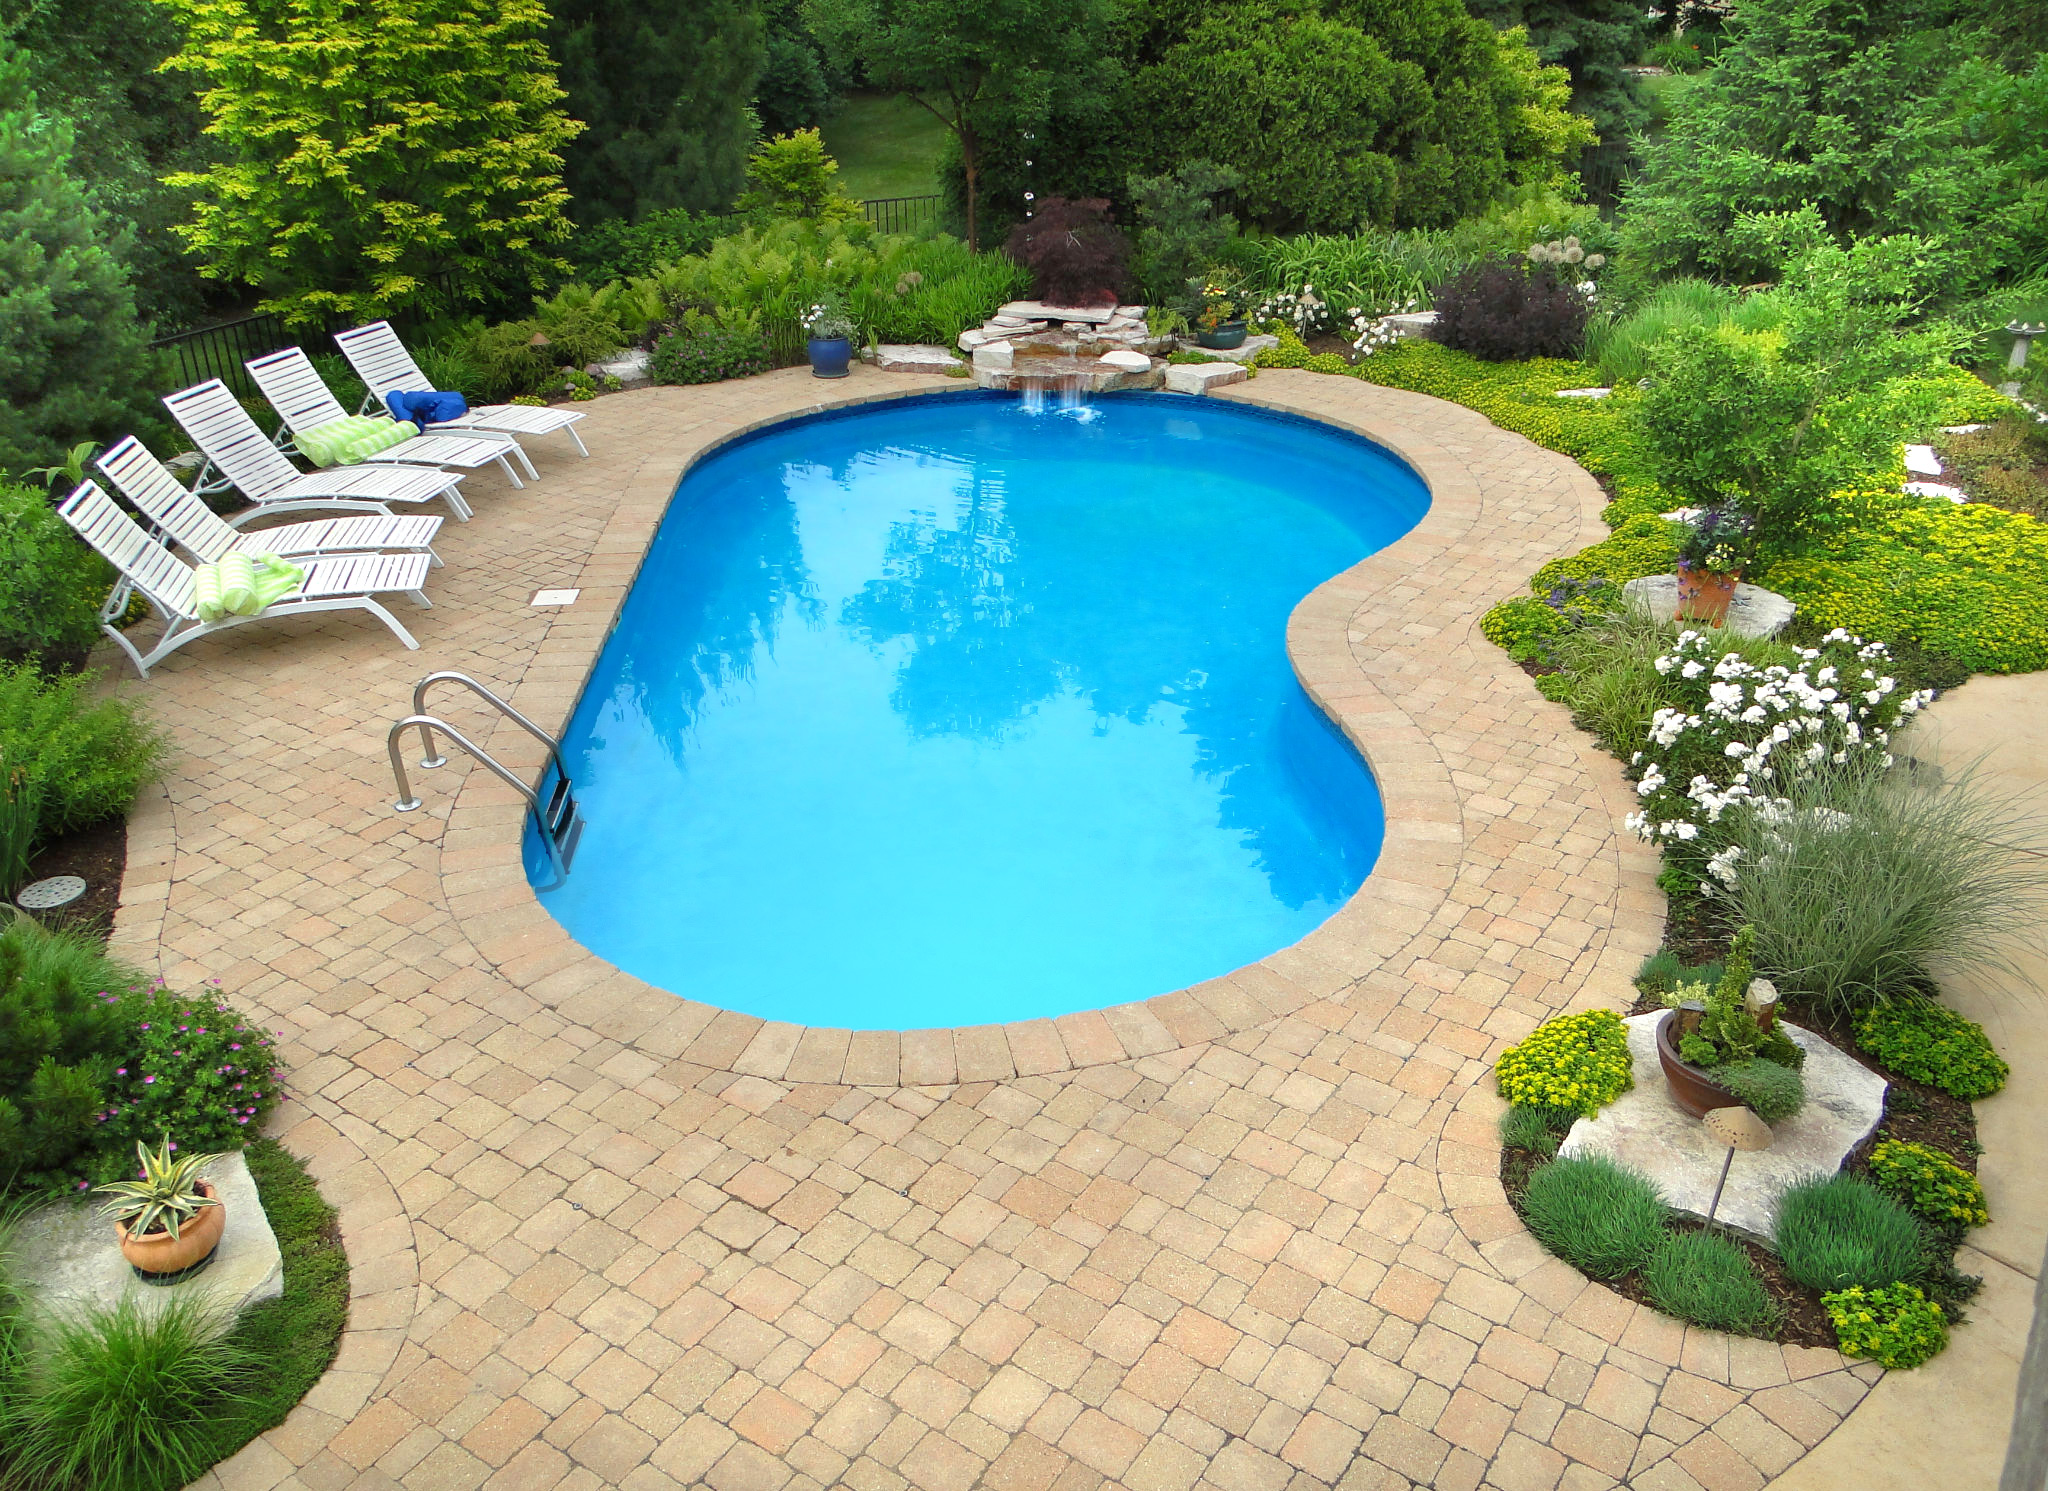 Stonewood Design Group will create a design to suit the style and personality of your property, like this hardscaped pool.